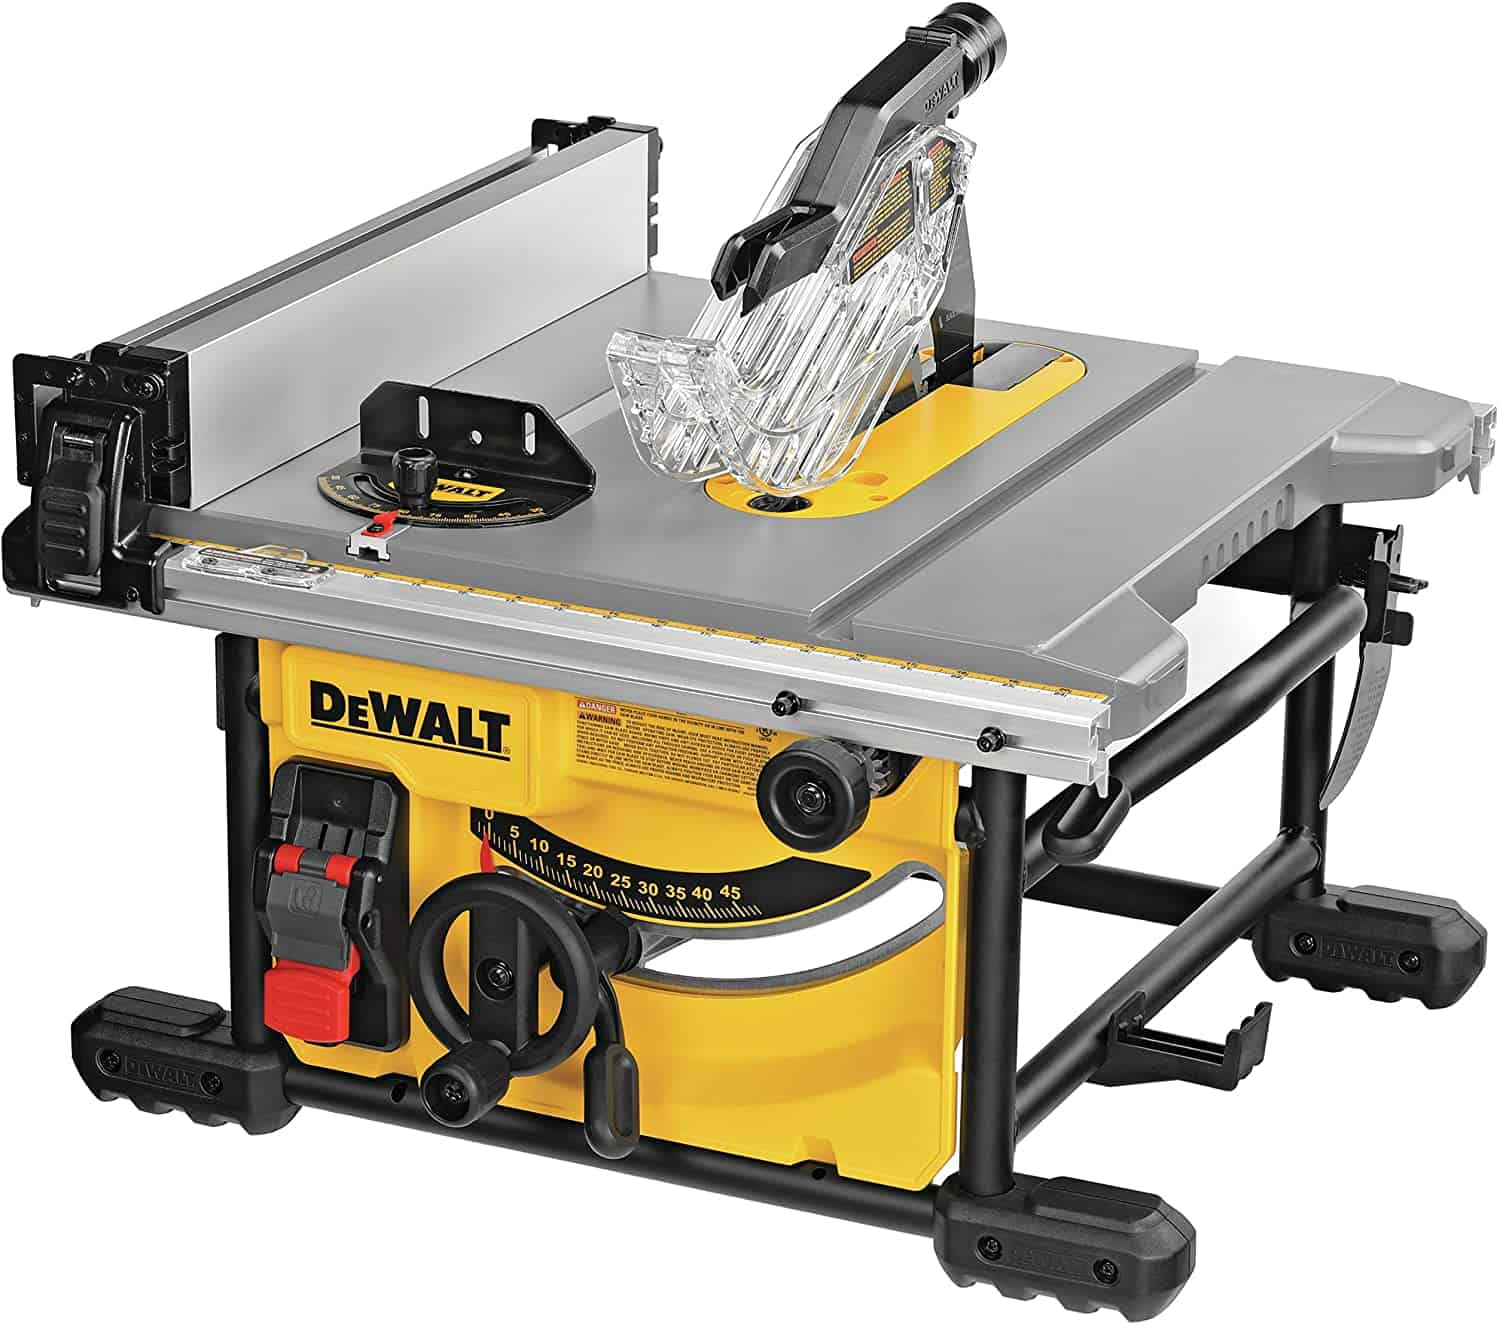 Best table top saw overall- DEWALT Compact 8-1:4-Inch Saw